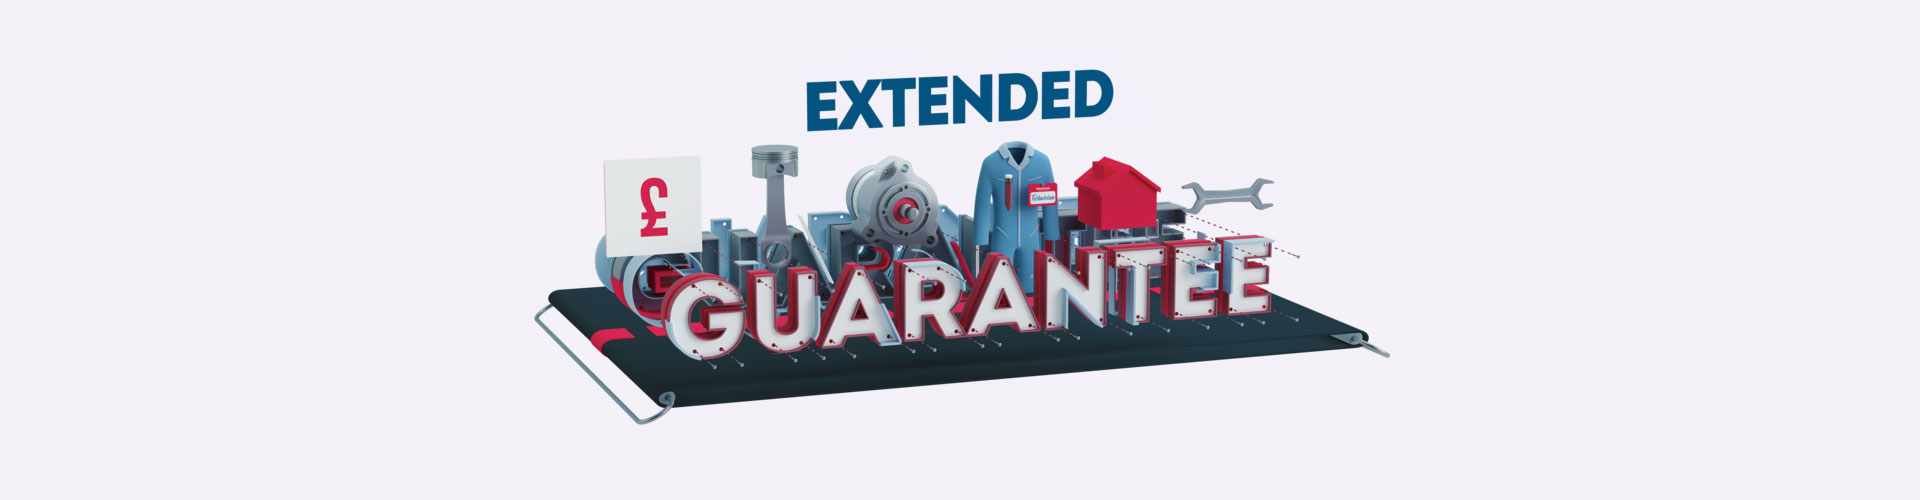 Honda Happiness - Extended Guarantee